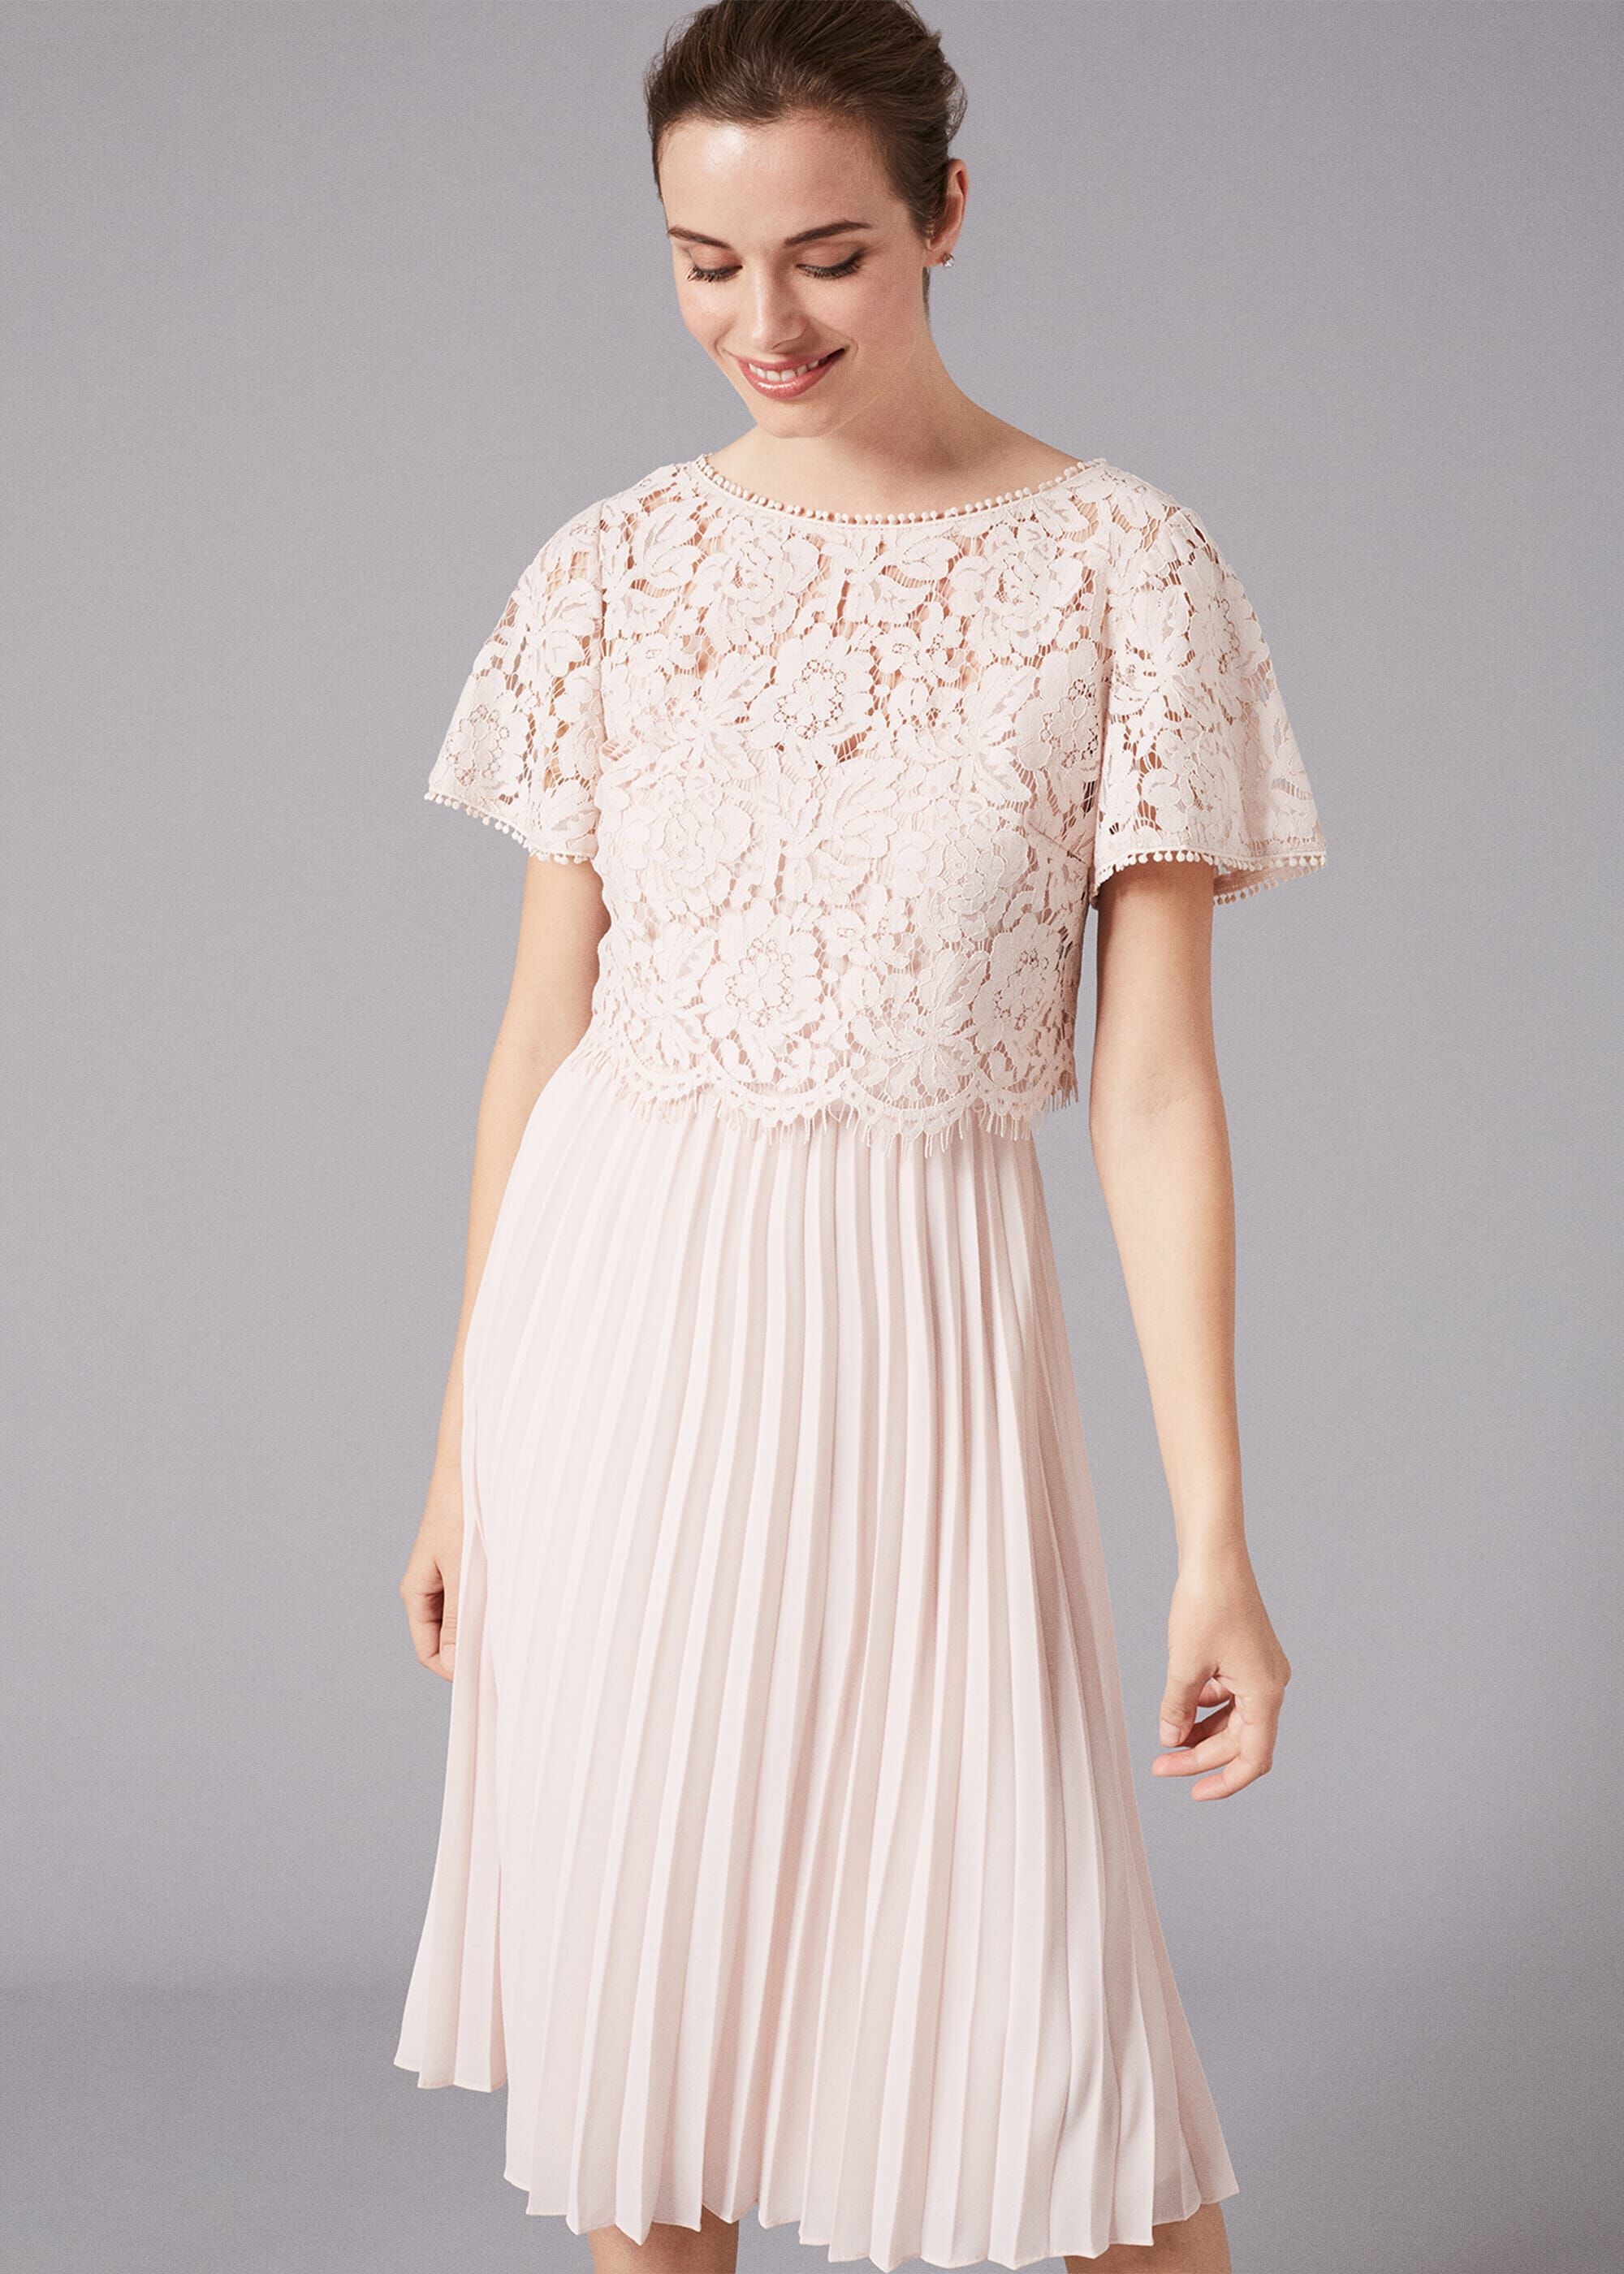 Phase Eight Bettina Lace Top Pleated Dress, Pink, Fit & Flare, Occasion Dress